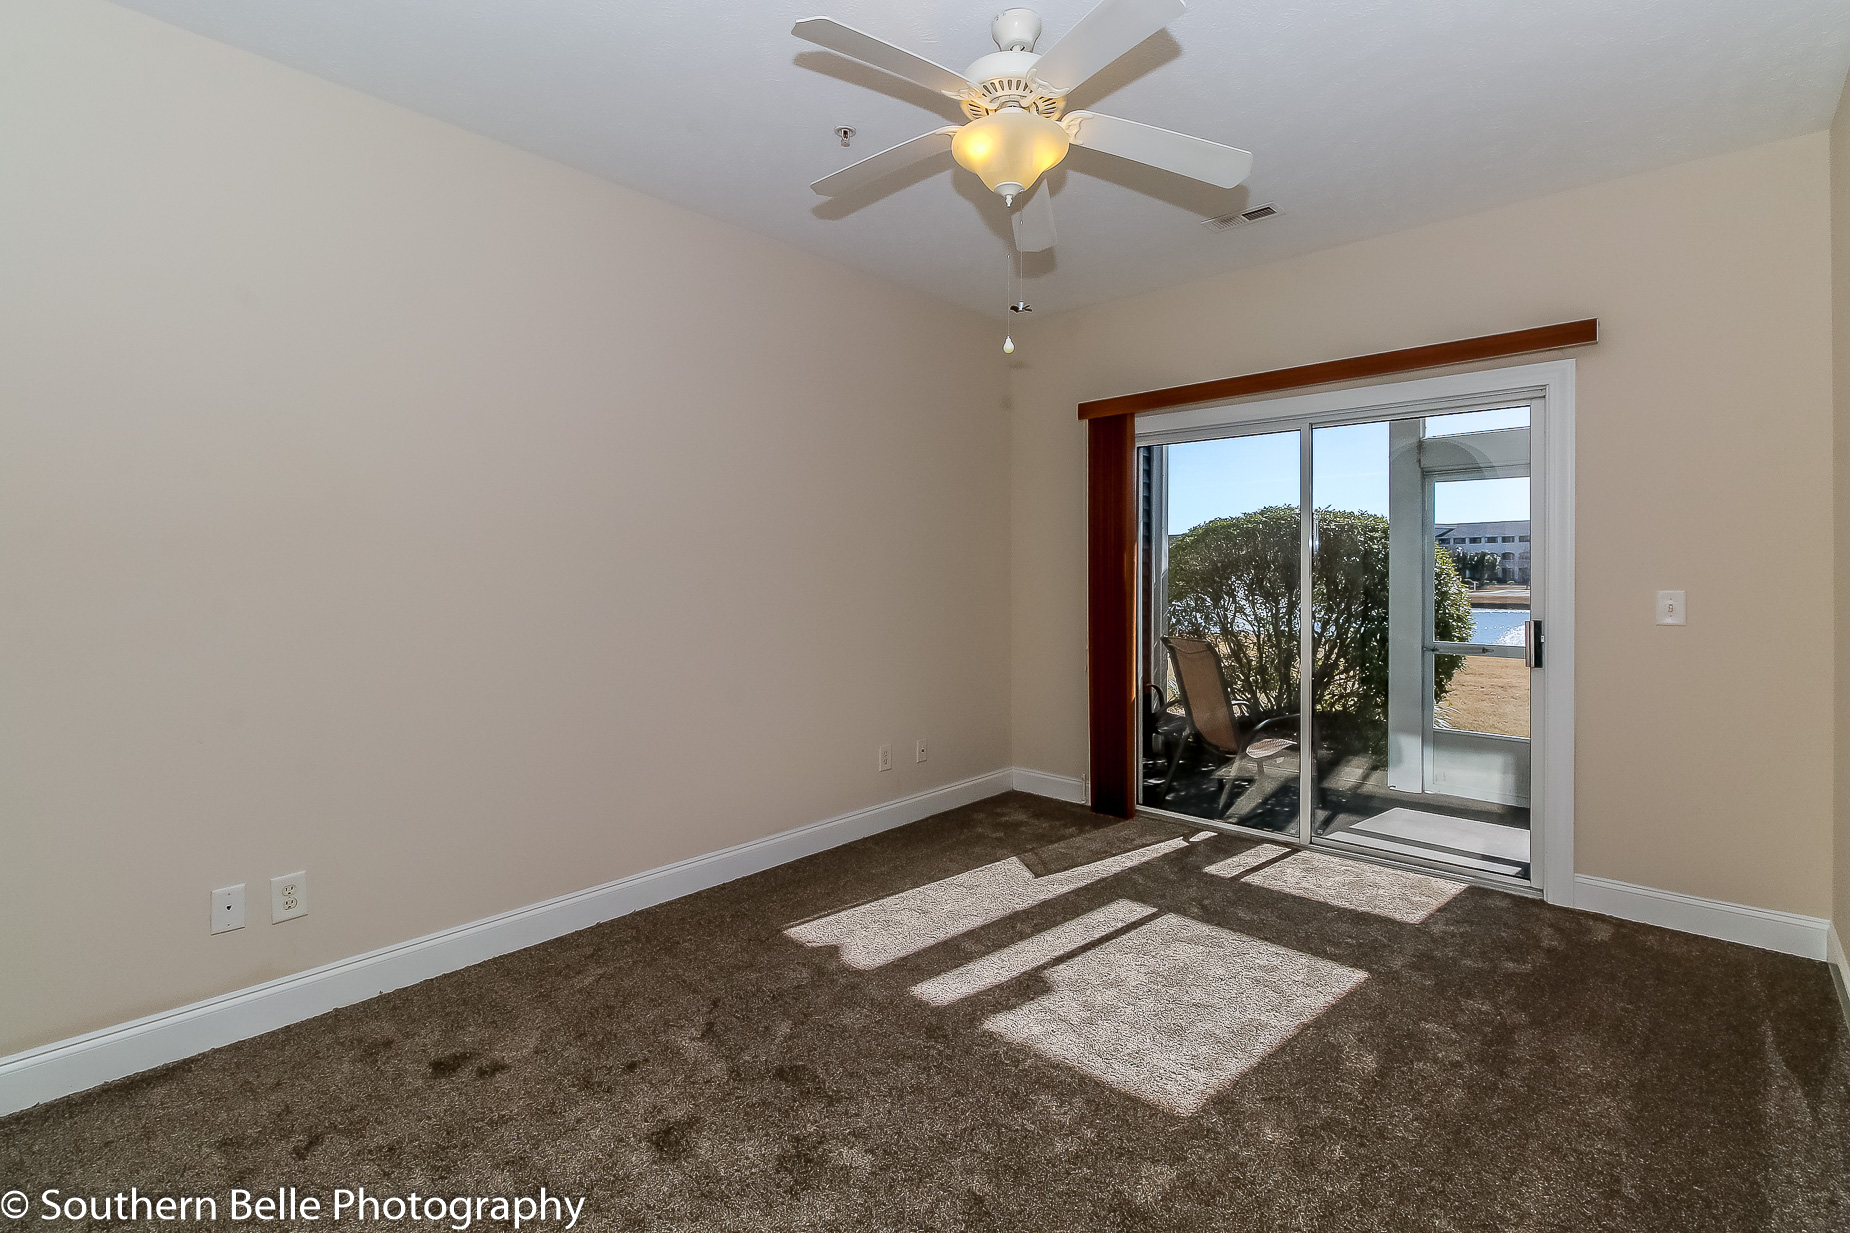 19. Master Bedroom with Lake View WM